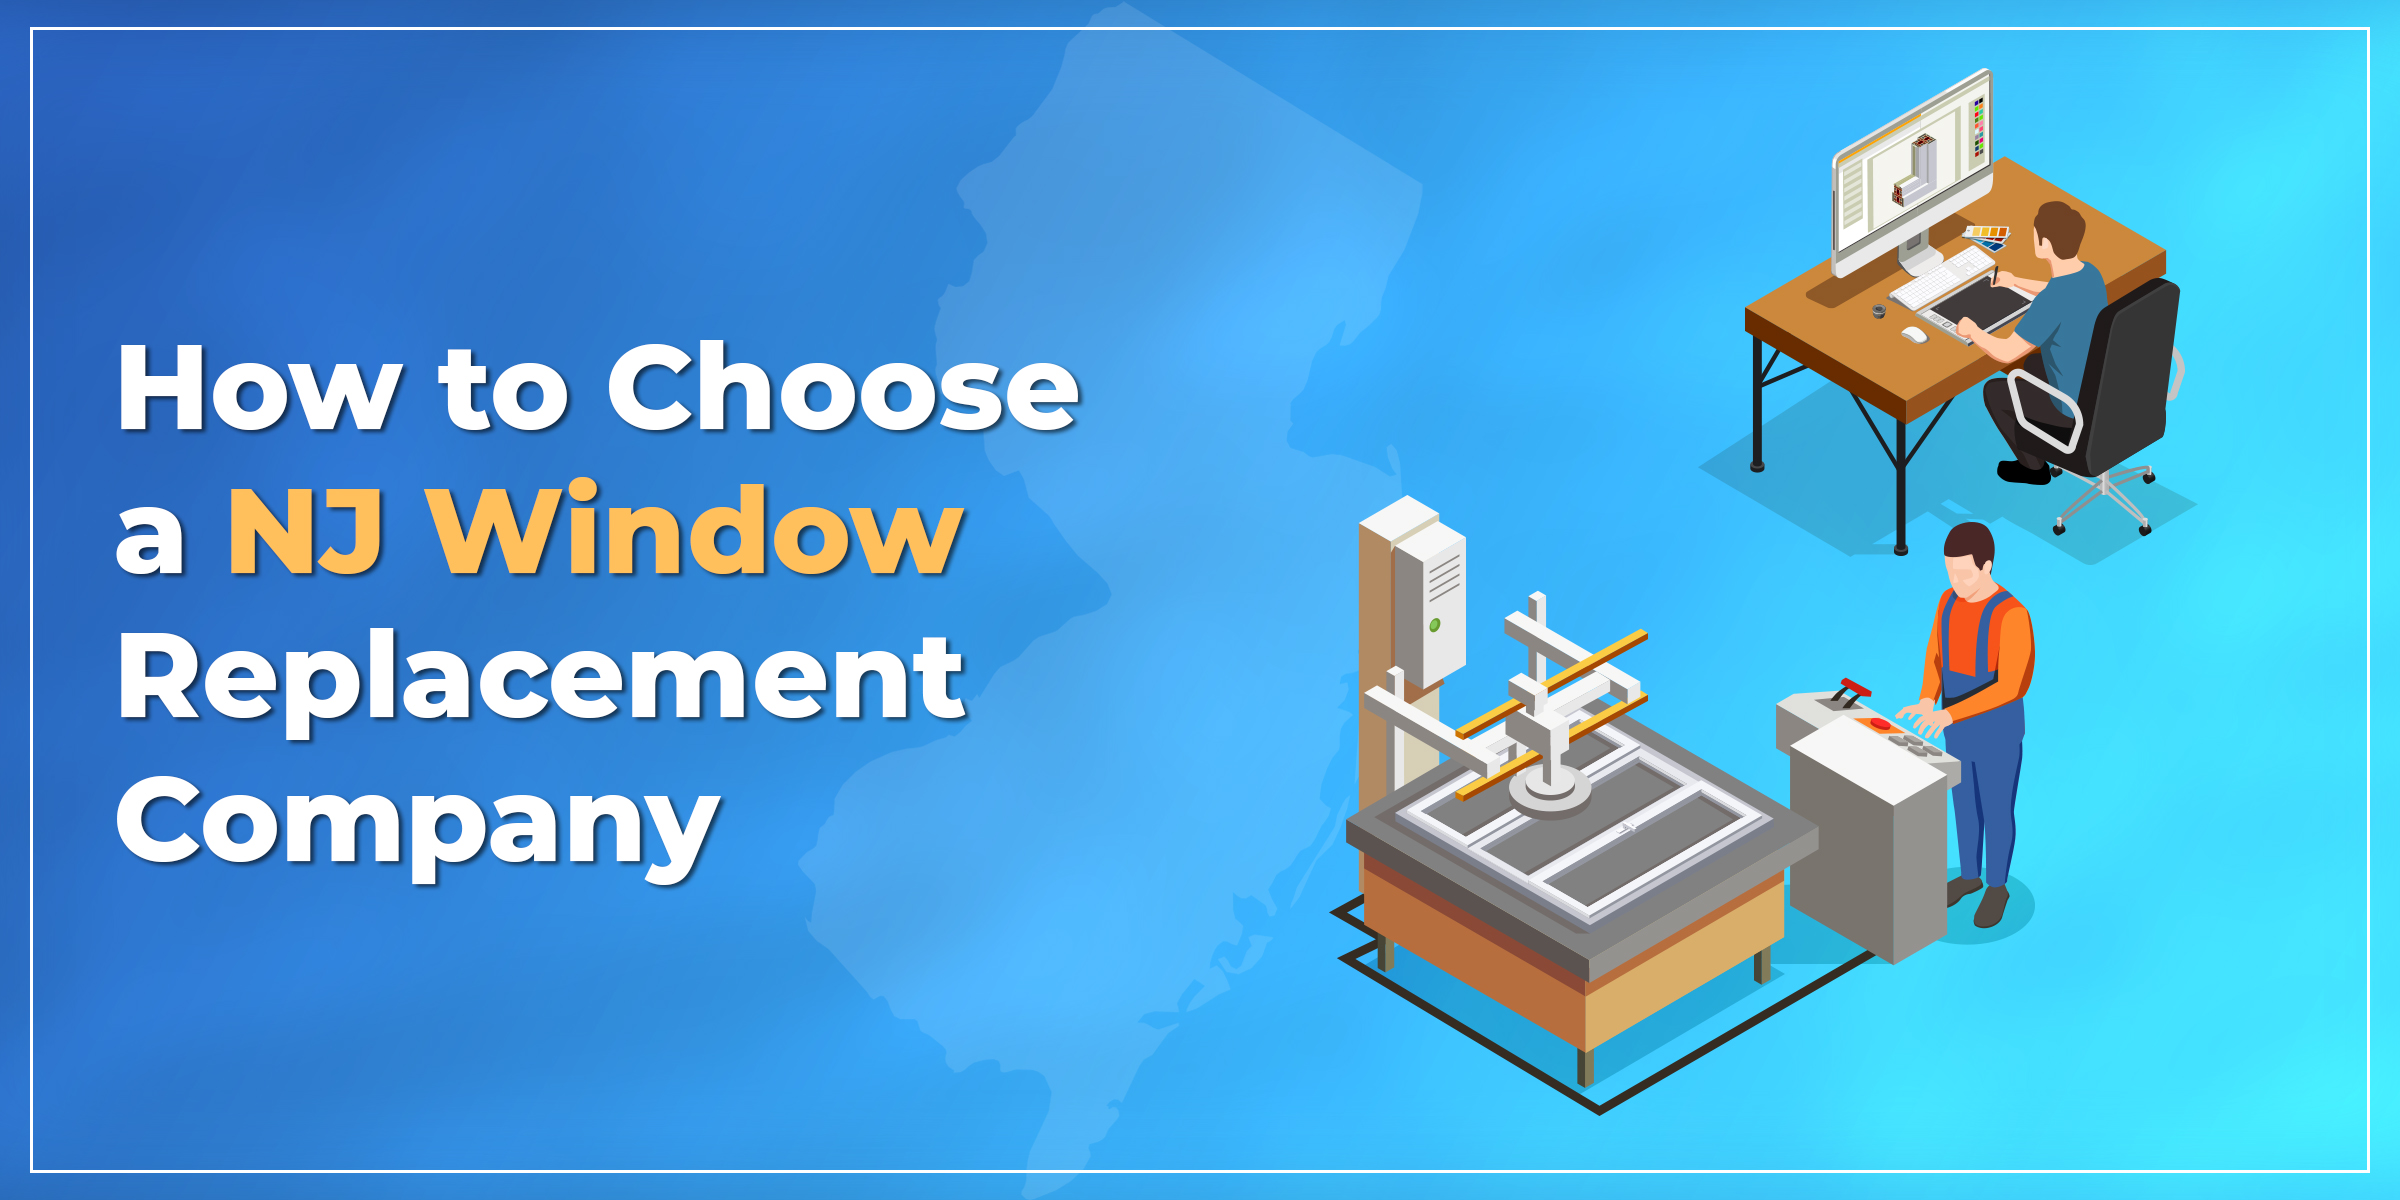 How to Choose a NJ Window Replacement Company